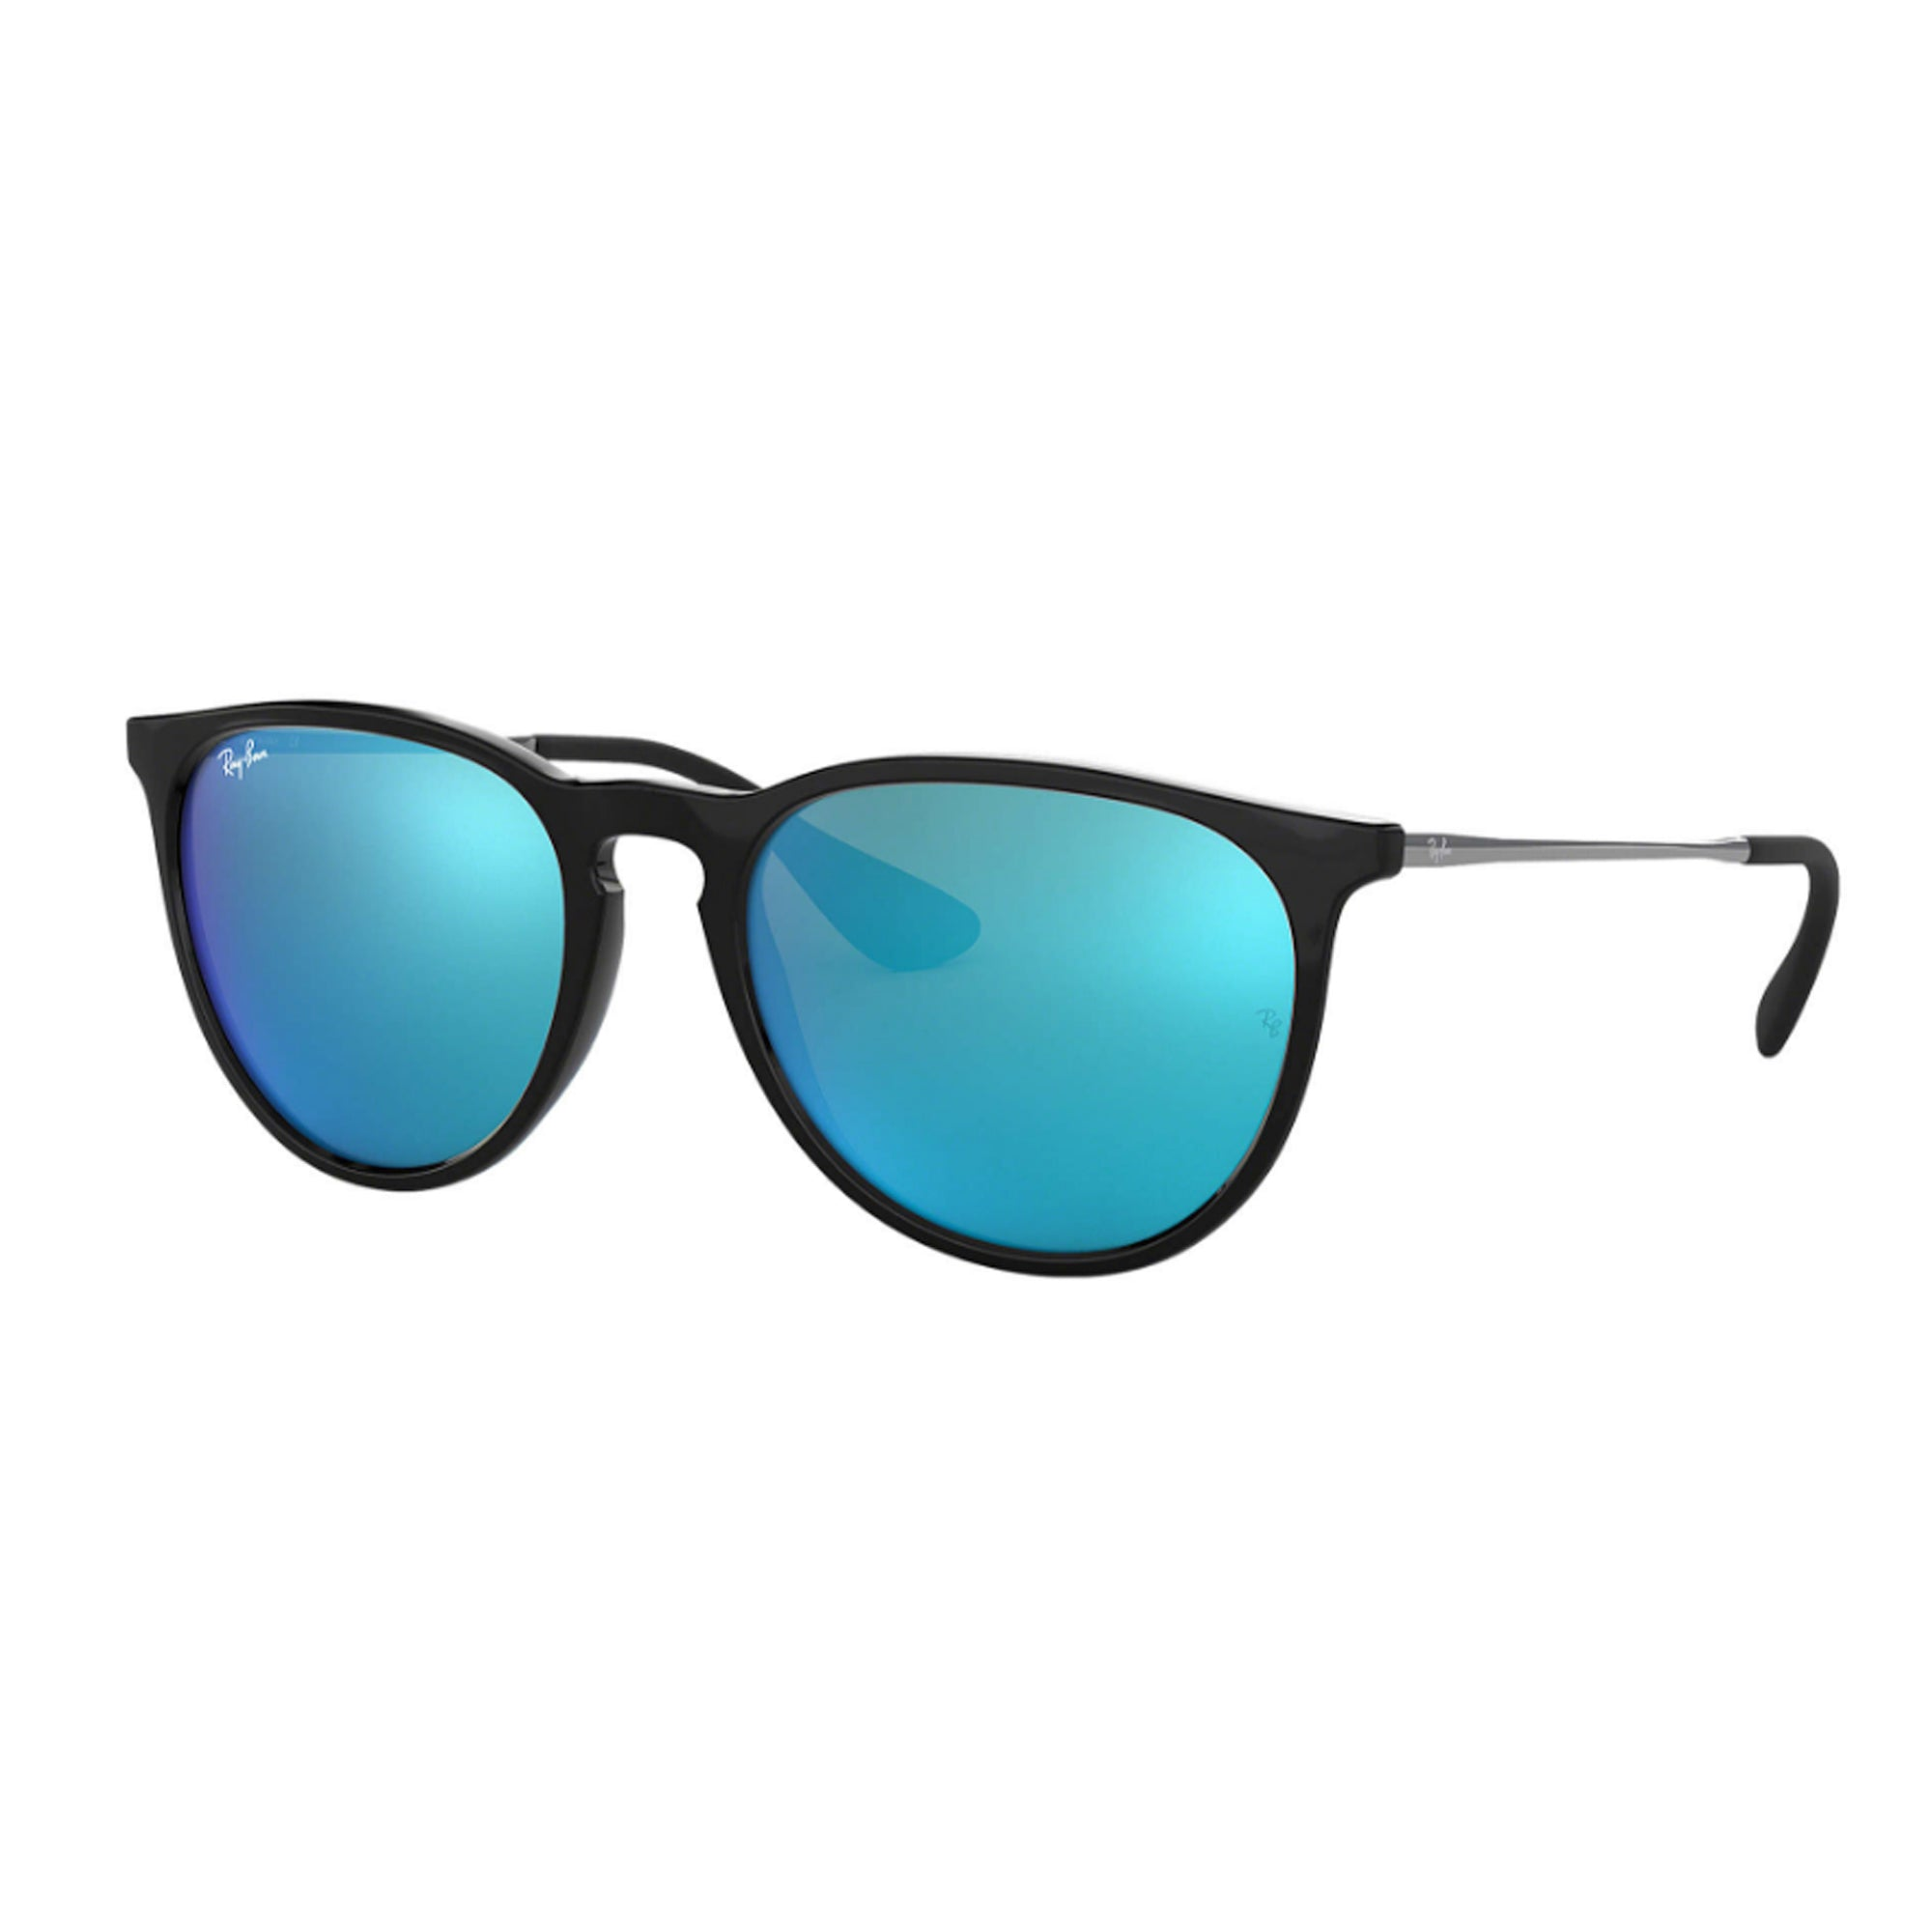 Ray-Ban Erika Women's Sunglasses - Black/Blue Mirror